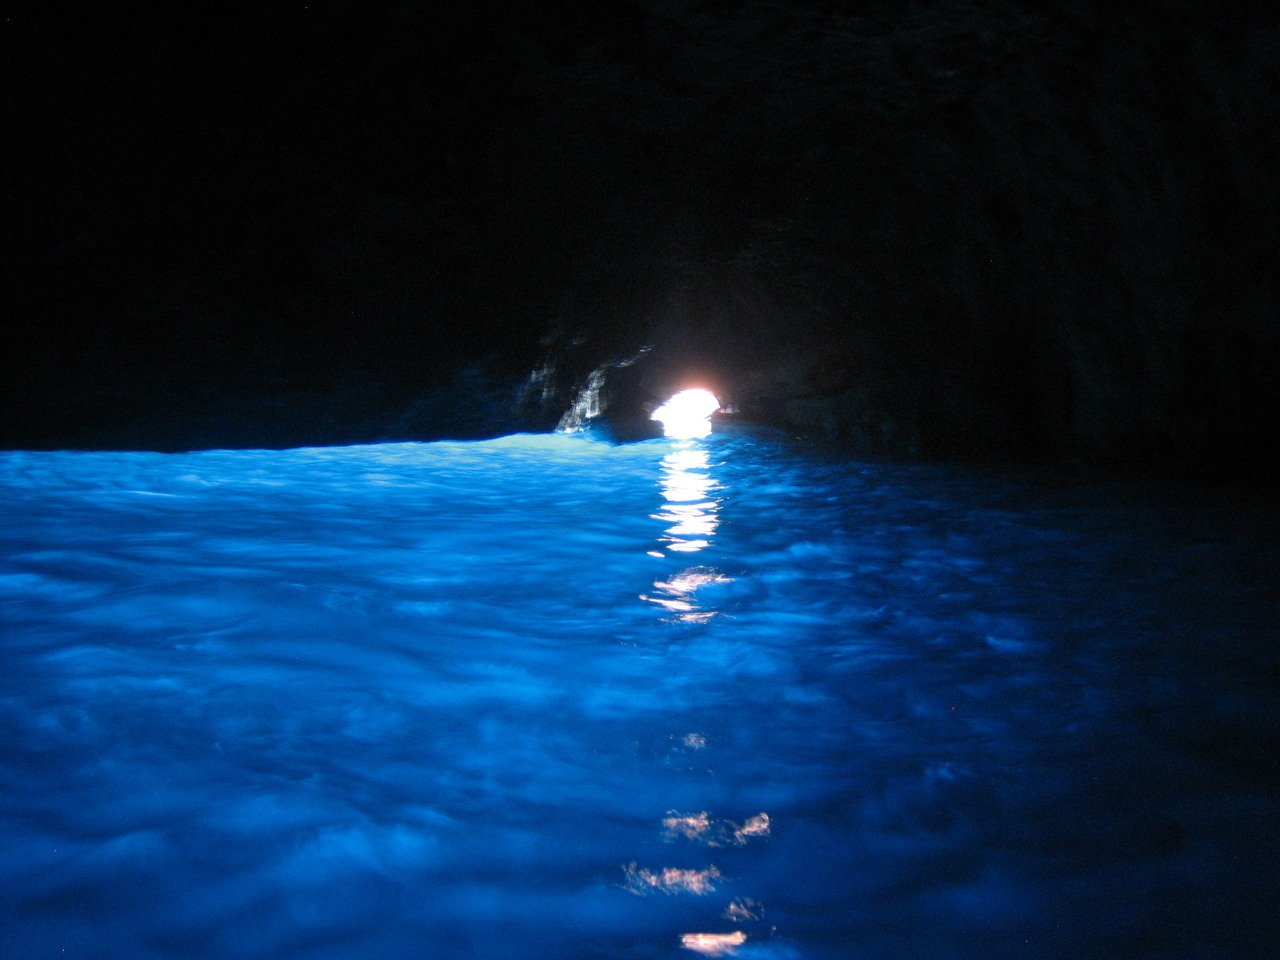 the-pursuit-of-hapa-ness:  The Grotta Azzurra (Blue Grotto) in Capri, 2011. Sunlight seeps in through an opening below the water's surface, setting the cavern alight in a brilliant blue.   SOOO PRETTY!